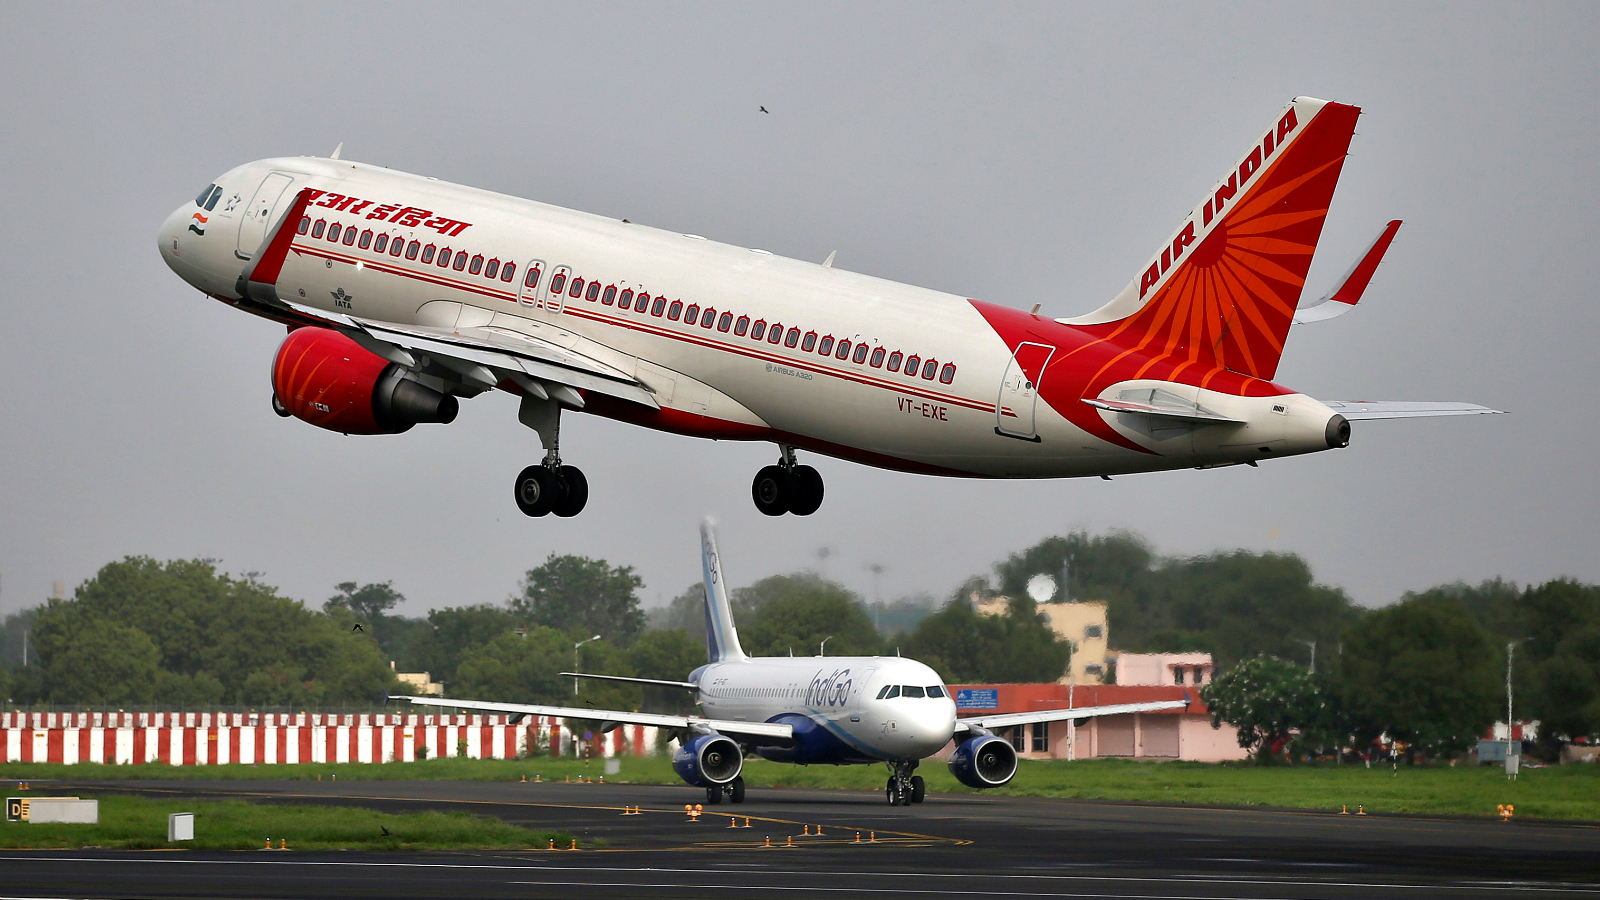 An Air India aircraft takes off as an IndiGo Airlines aircraft waits for clearance at the Sardar Vallabhbhai Patel International Airport in Ahmedabad, India, July 7, 2017. Picture taken July 7, 2017. To match Analysis AIR INDIA-PRIVATISATION/